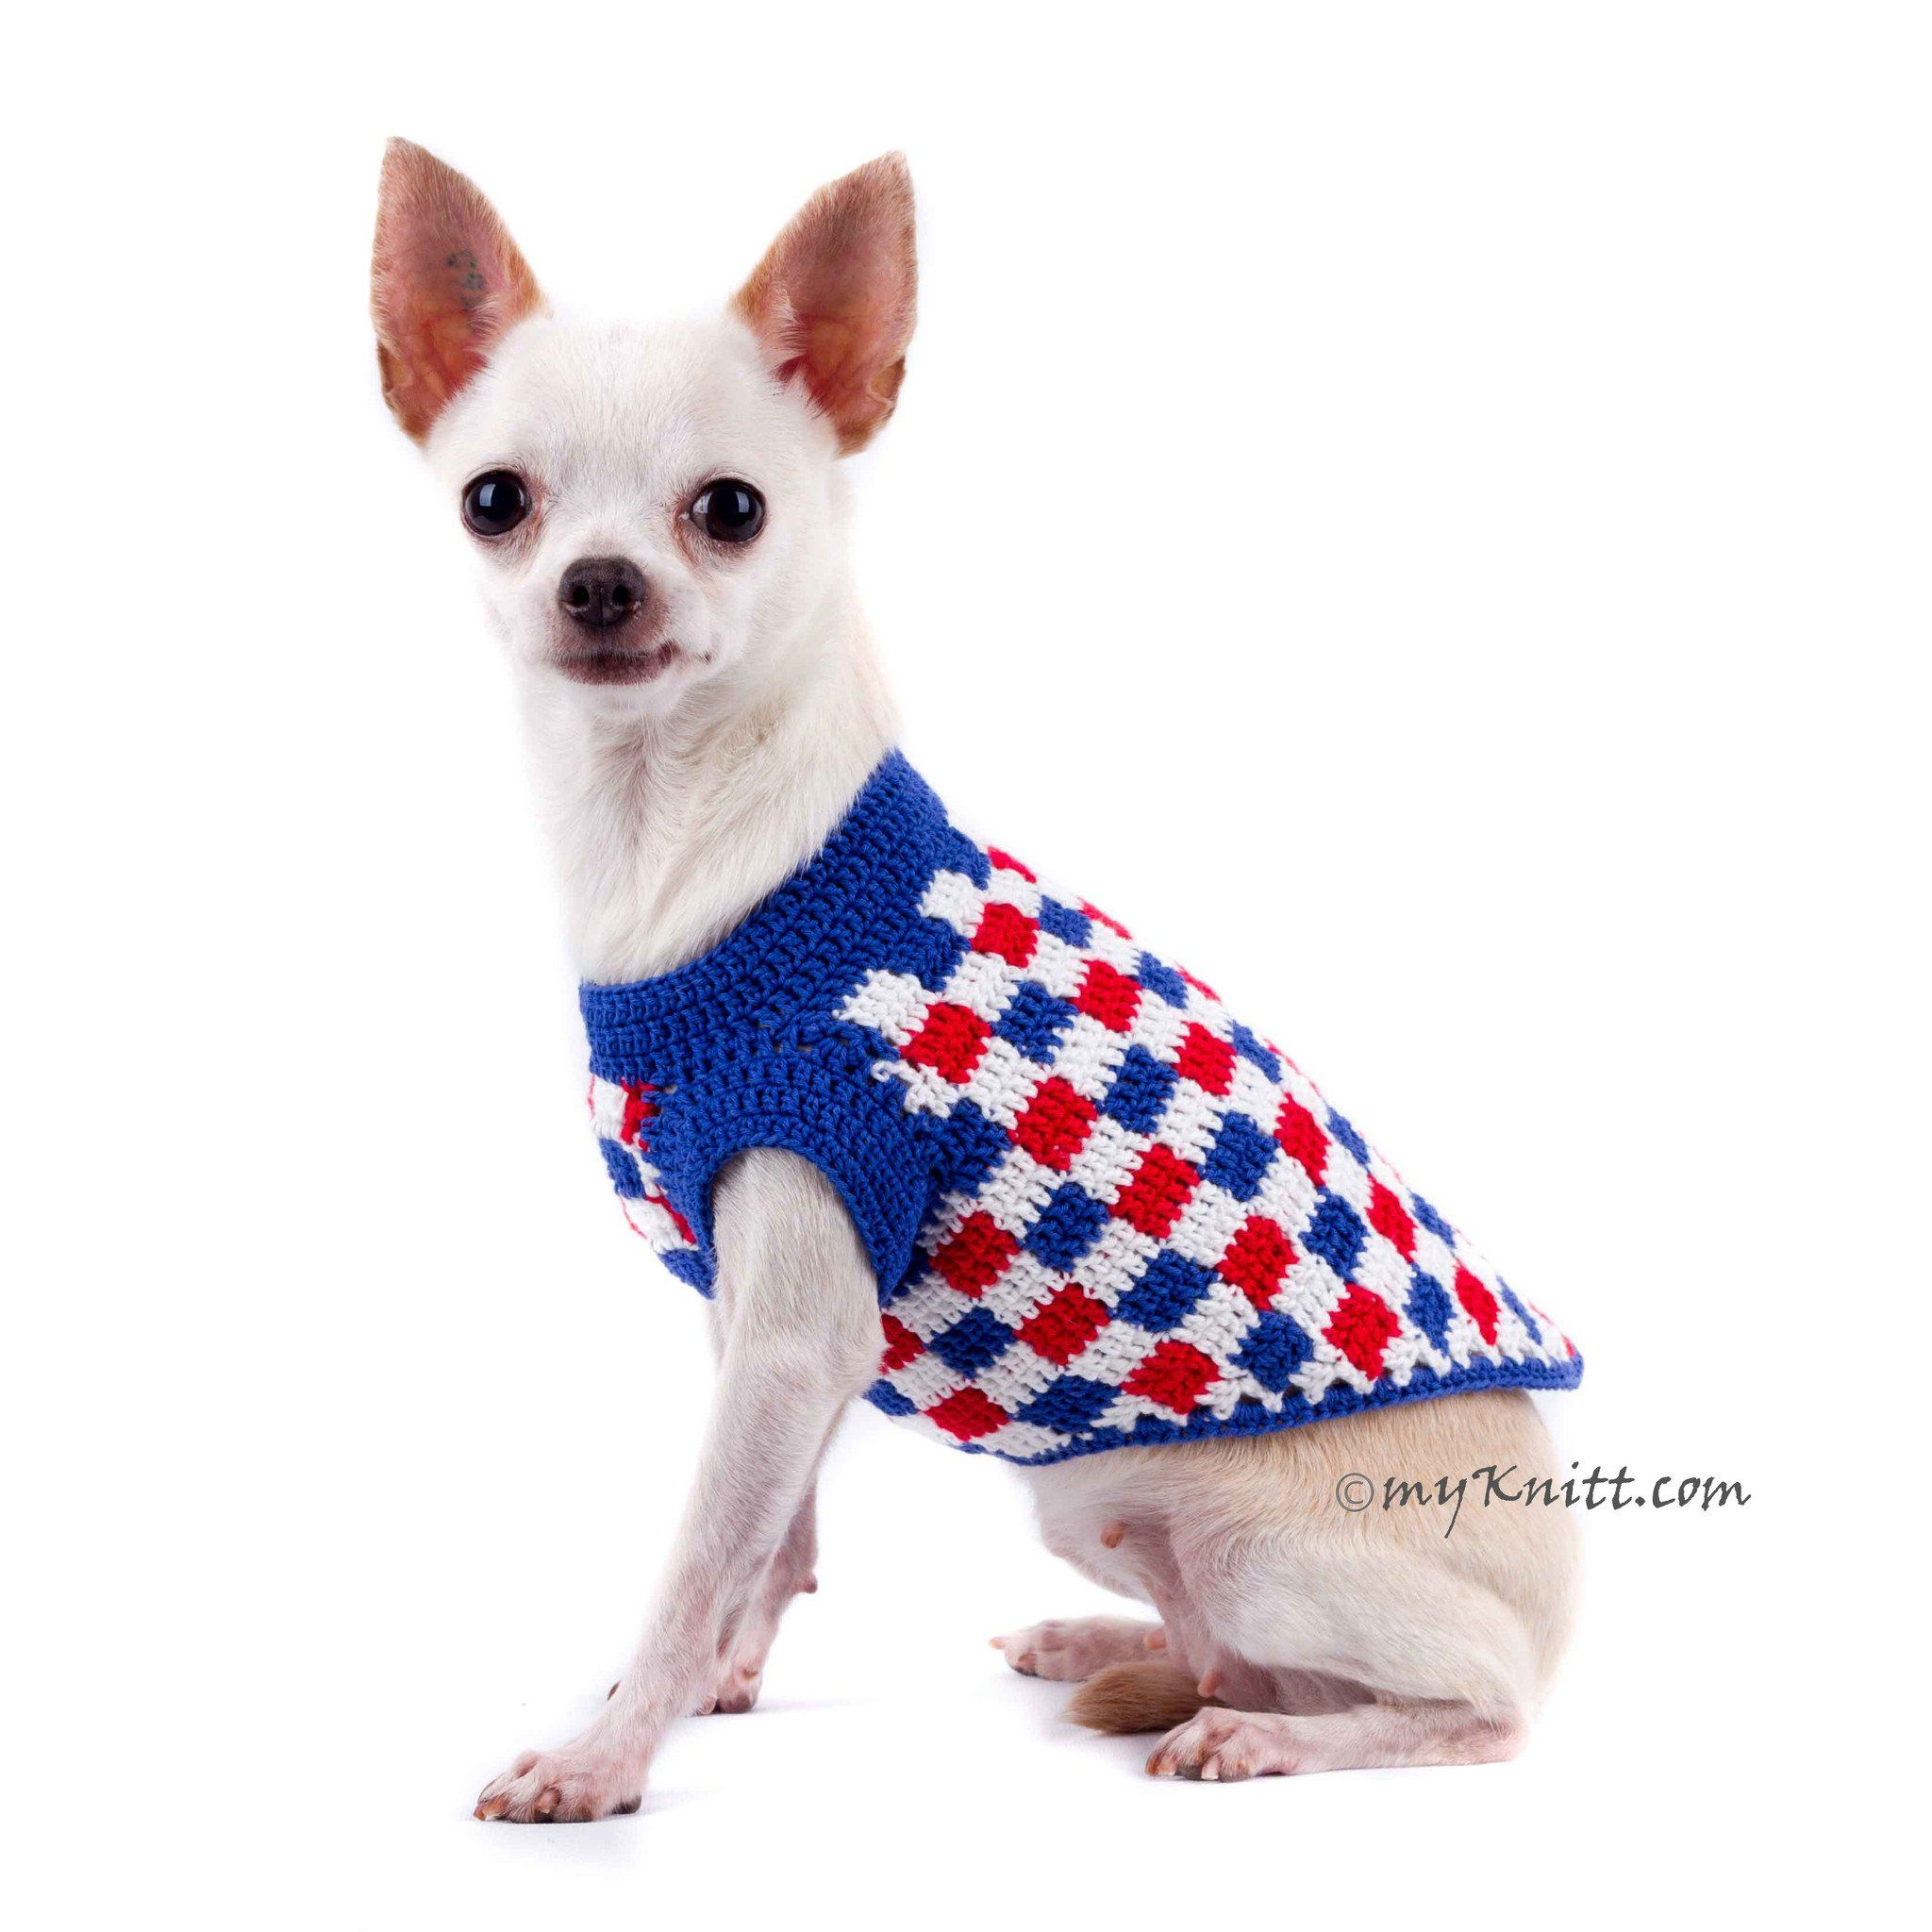 419fd396ad8e Plaid Red White Blue Dog Shirt 4th Of July Usa Handmade Crochet Dk792  Myknitt #usa